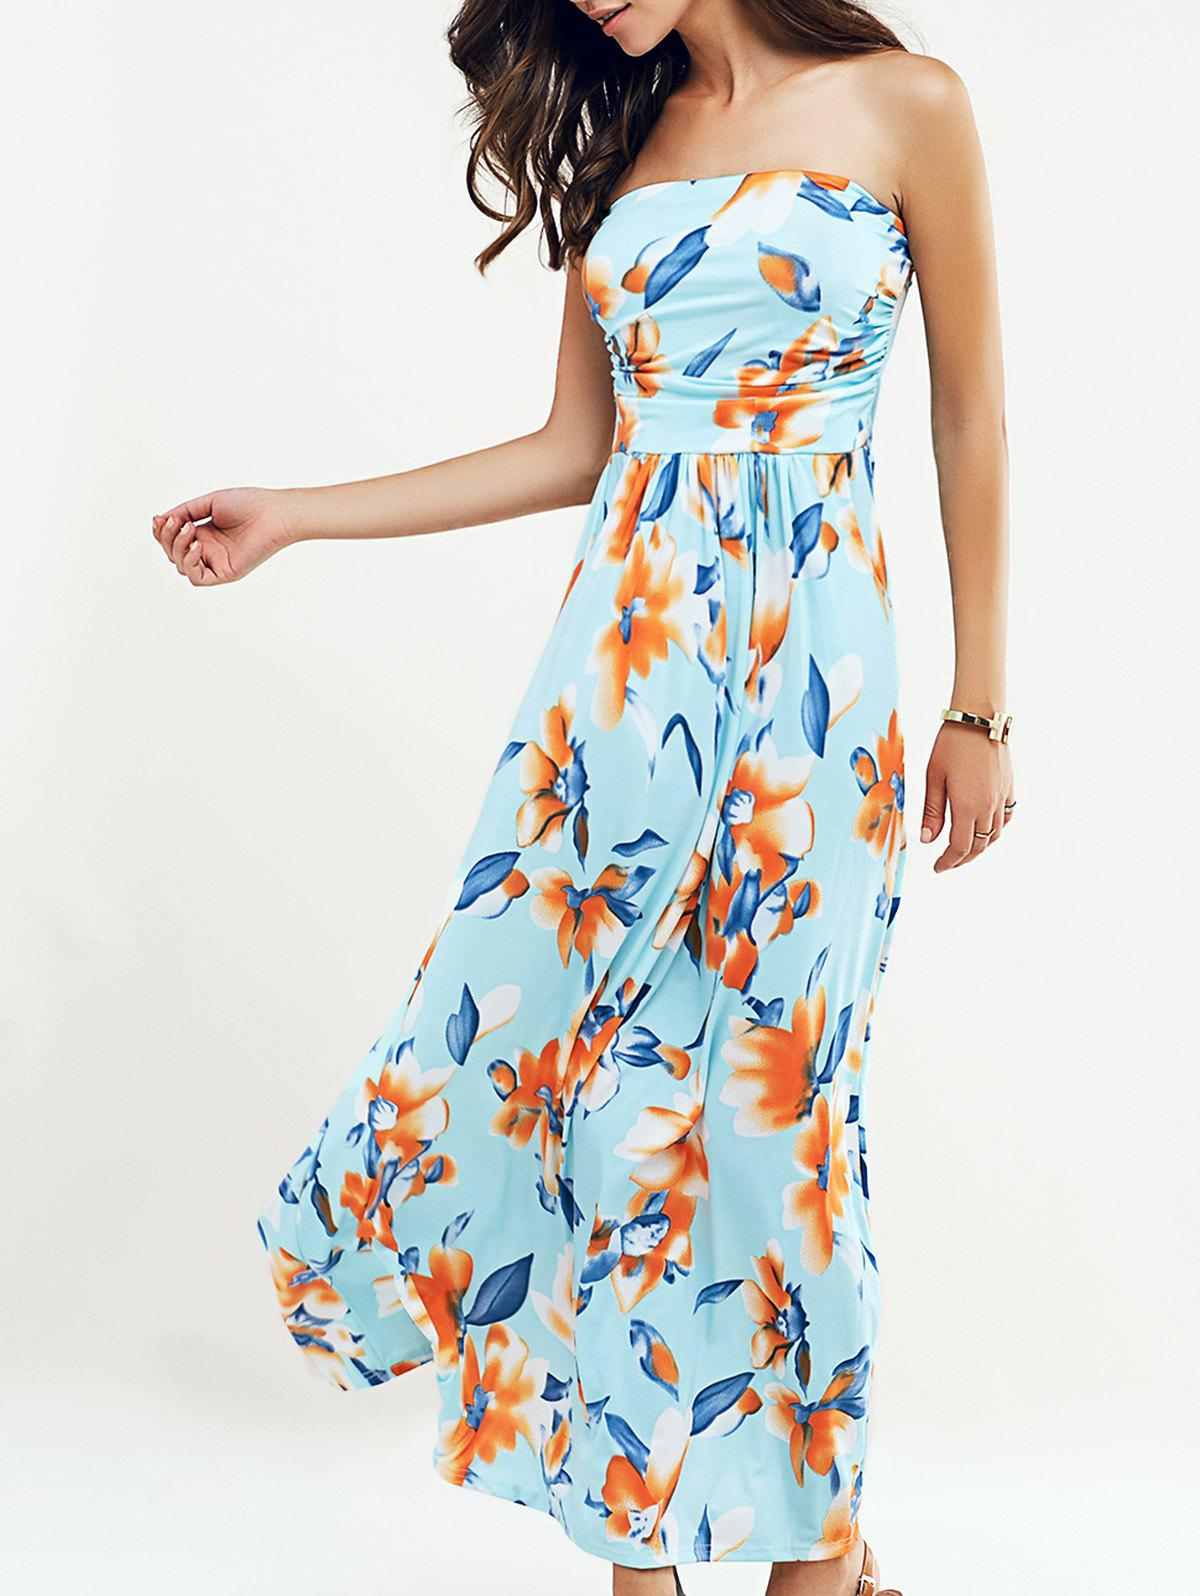 Beach Maxi Floral Print Strapless Dress - LIGHT BLUE XL